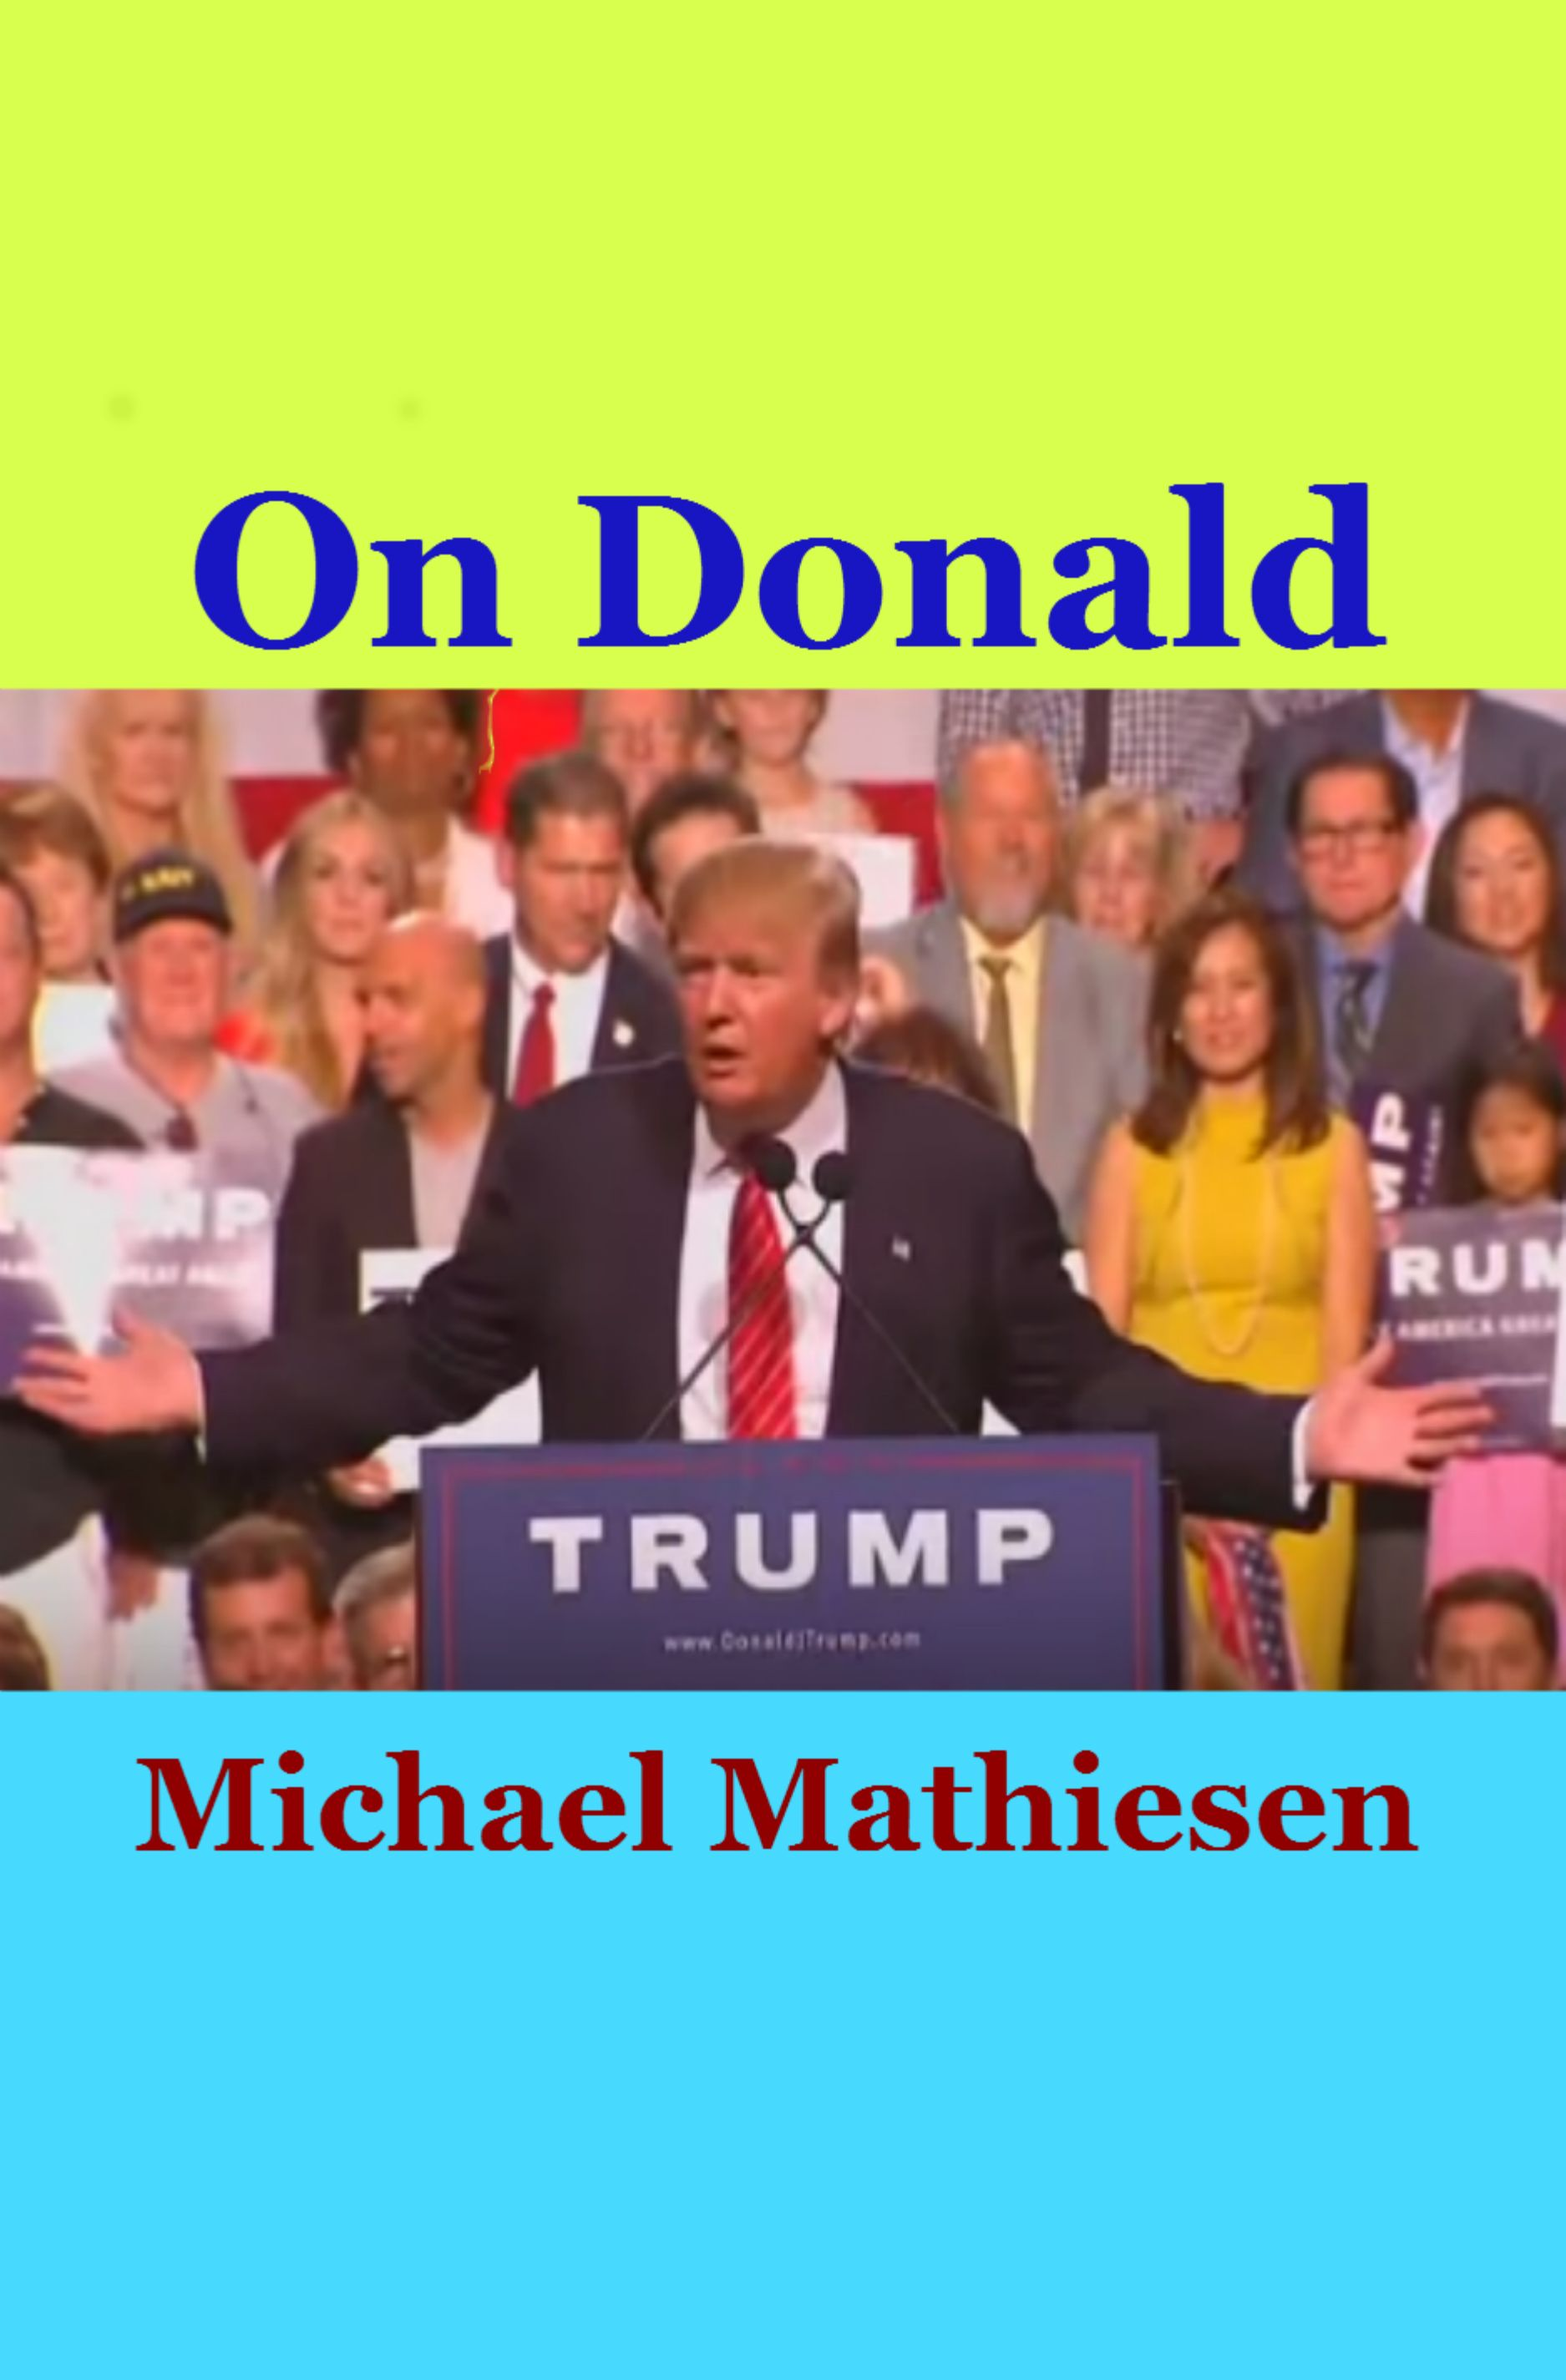 Pay for my top creative essay on donald trump pay to get environmental studies book review